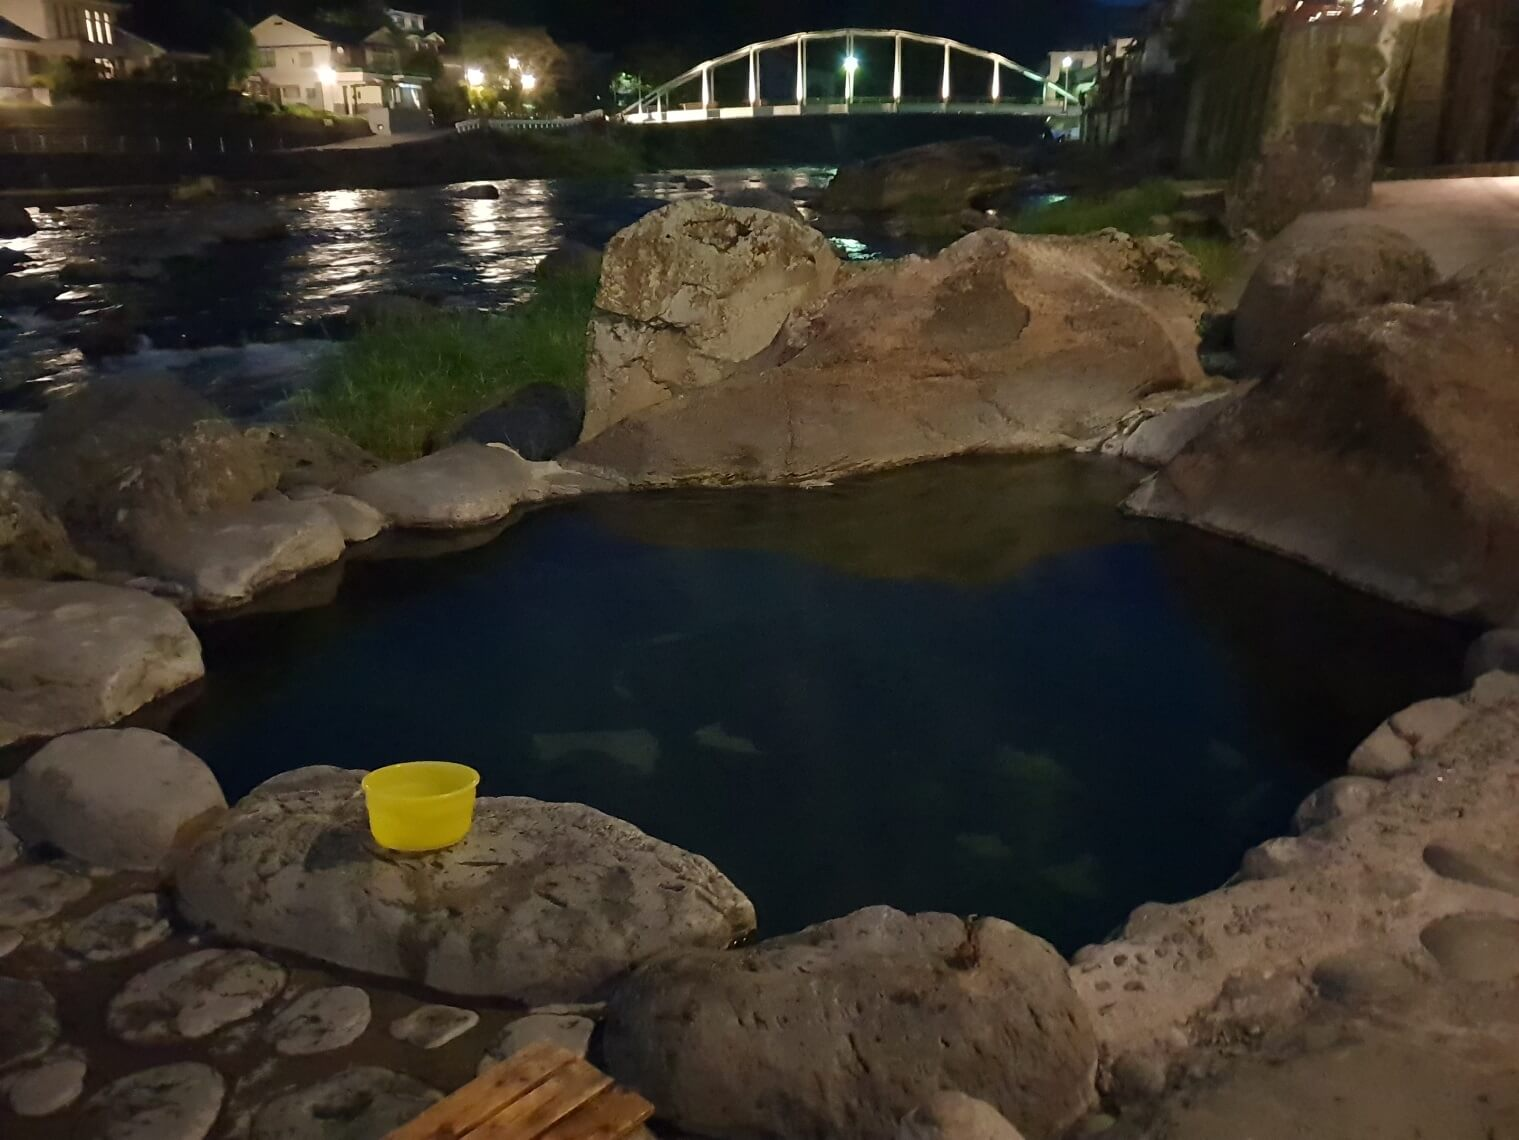 A hot spring pool at night, with a yellow bucket sitting on a rock.